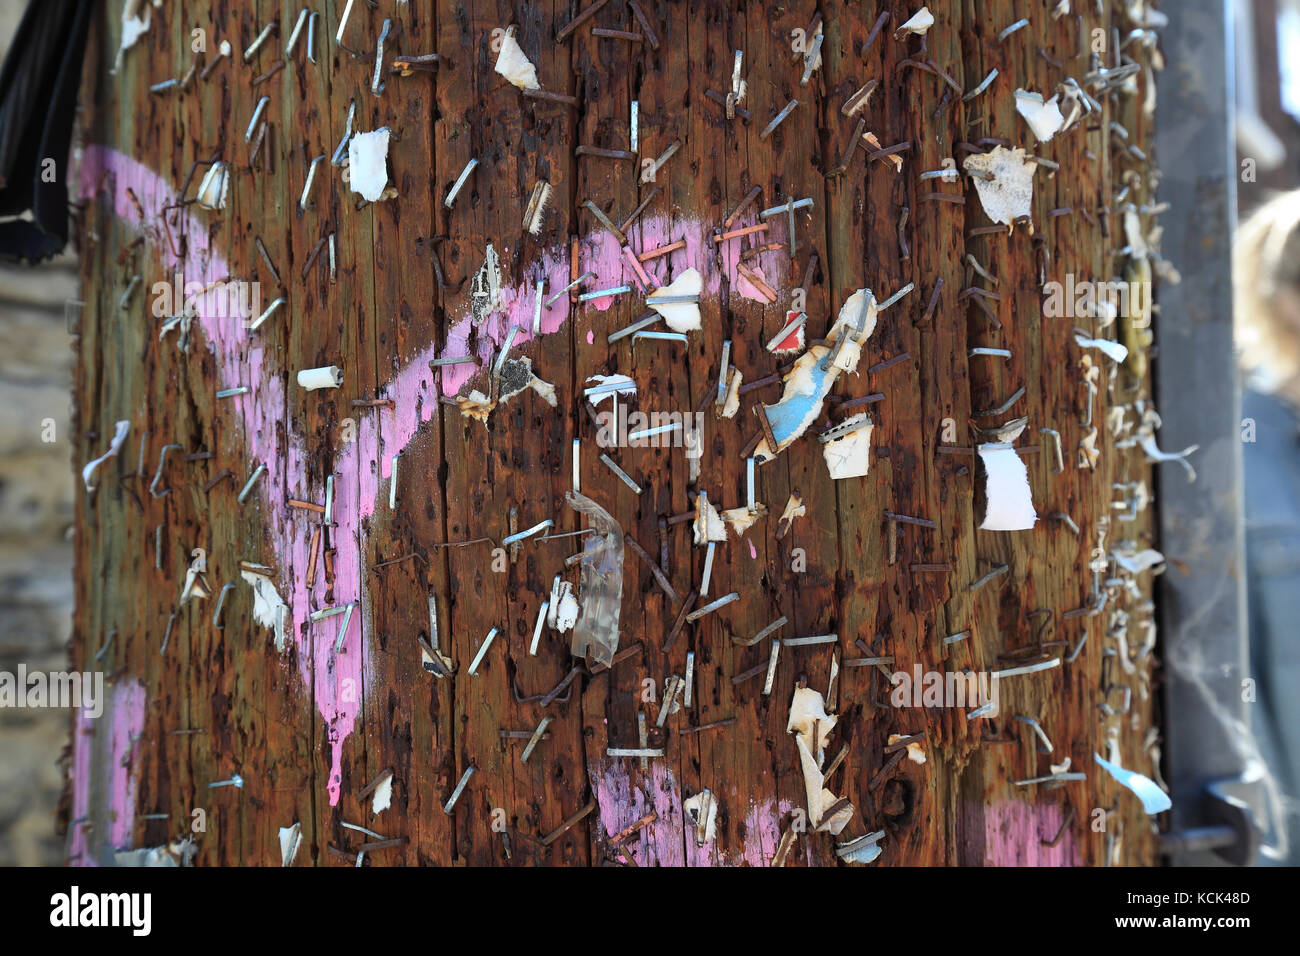 leftover staples from flyers in utility pole - Stock Image